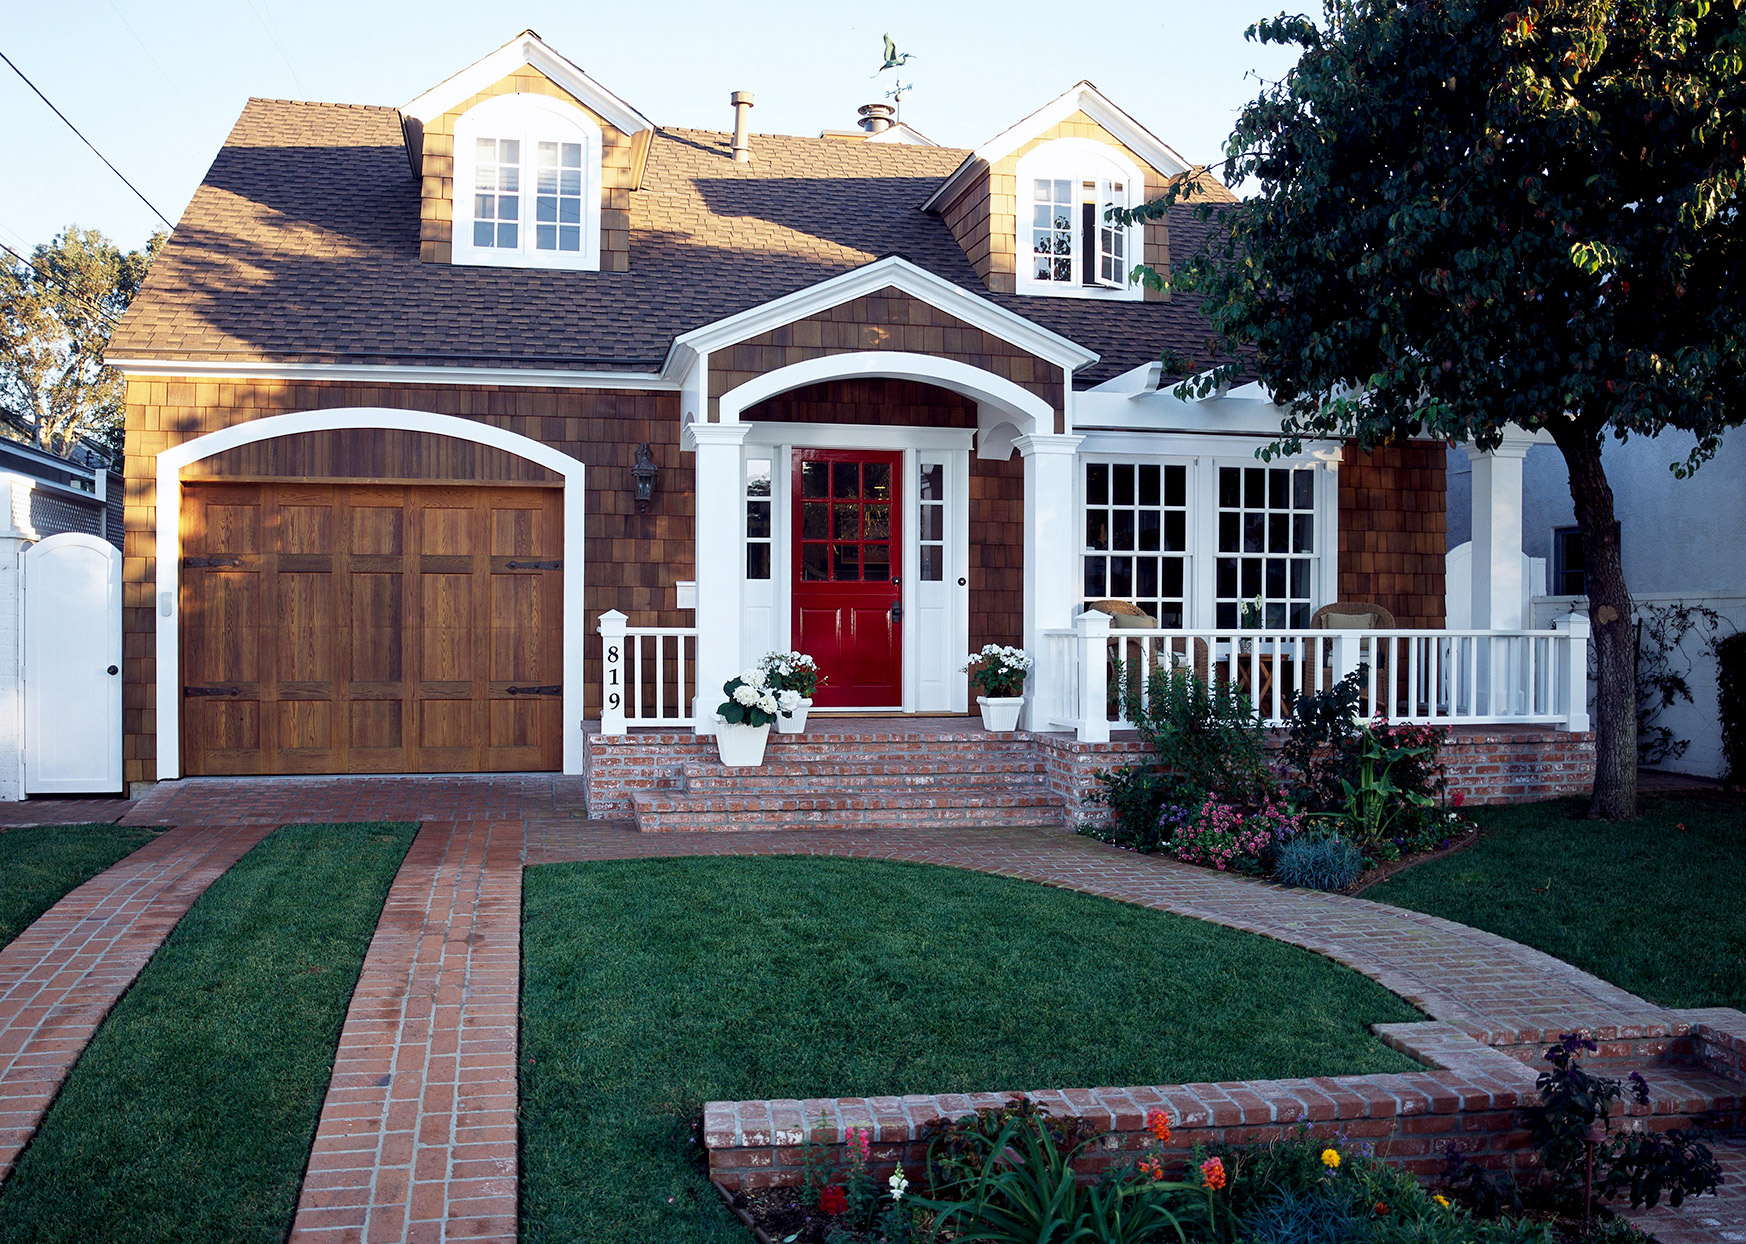 Wooden house with white trim and red door